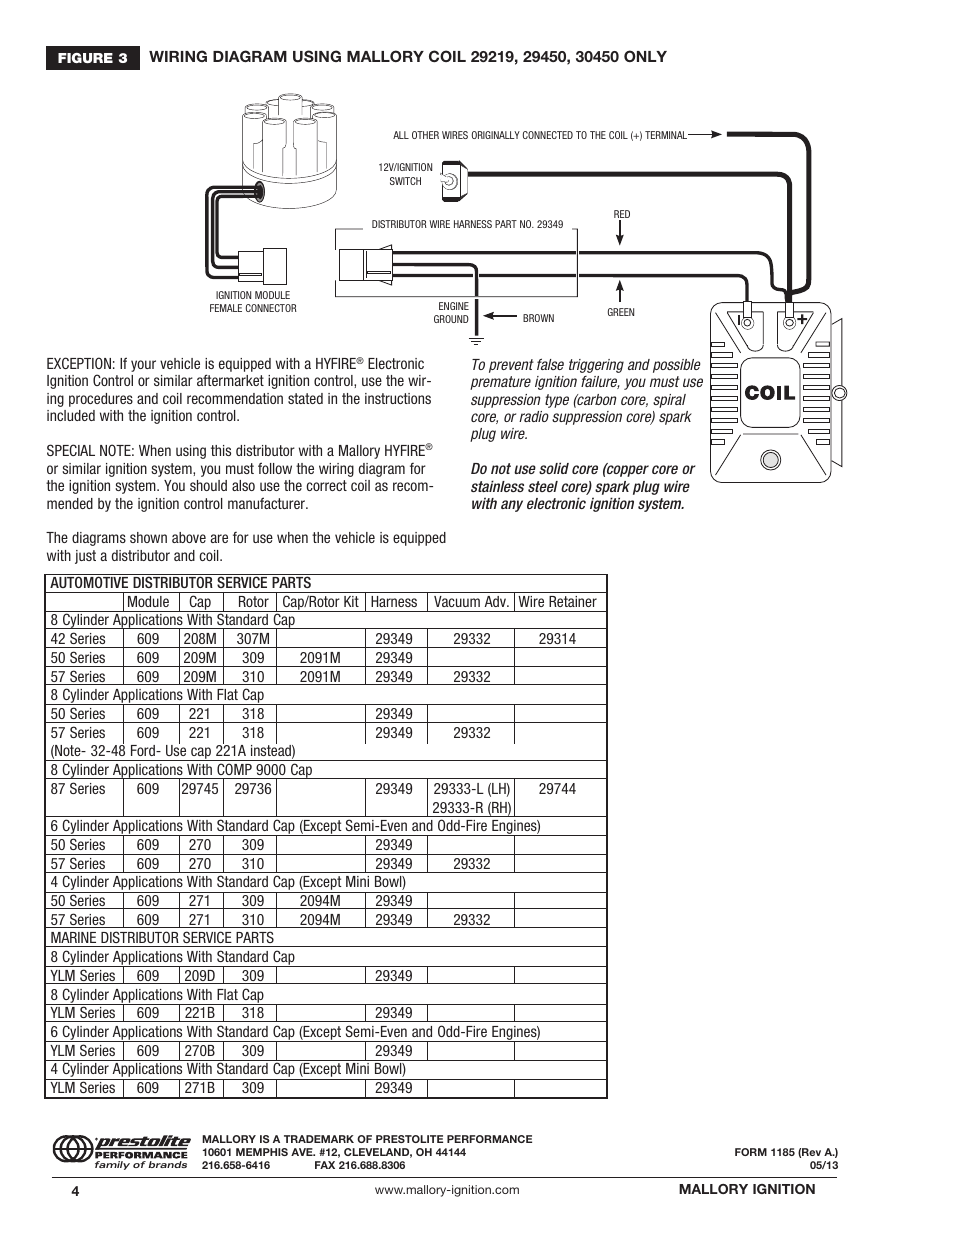 WRG-5324] Mallory Magnetic Breakerless Distributor Wiring Diagram on